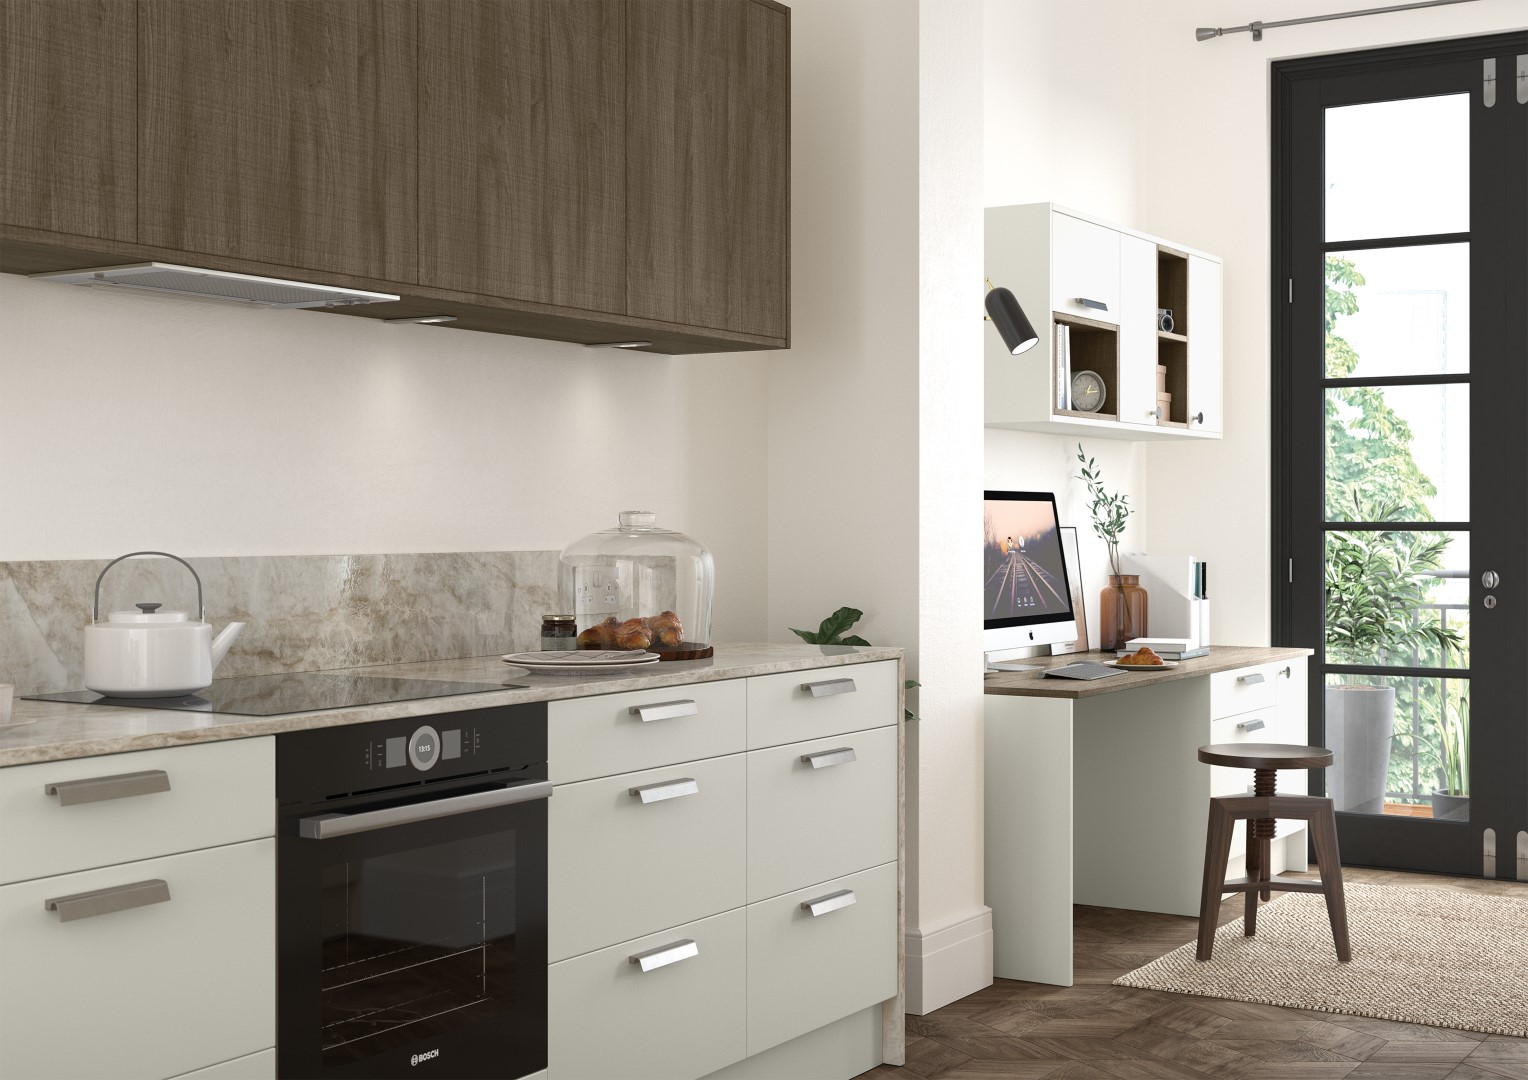 Zola Soft-Matte Porcelain and Rezana Stained Weathered Silver - Kitchen Design - Alan Kelly Kitchens - Waterford - 1